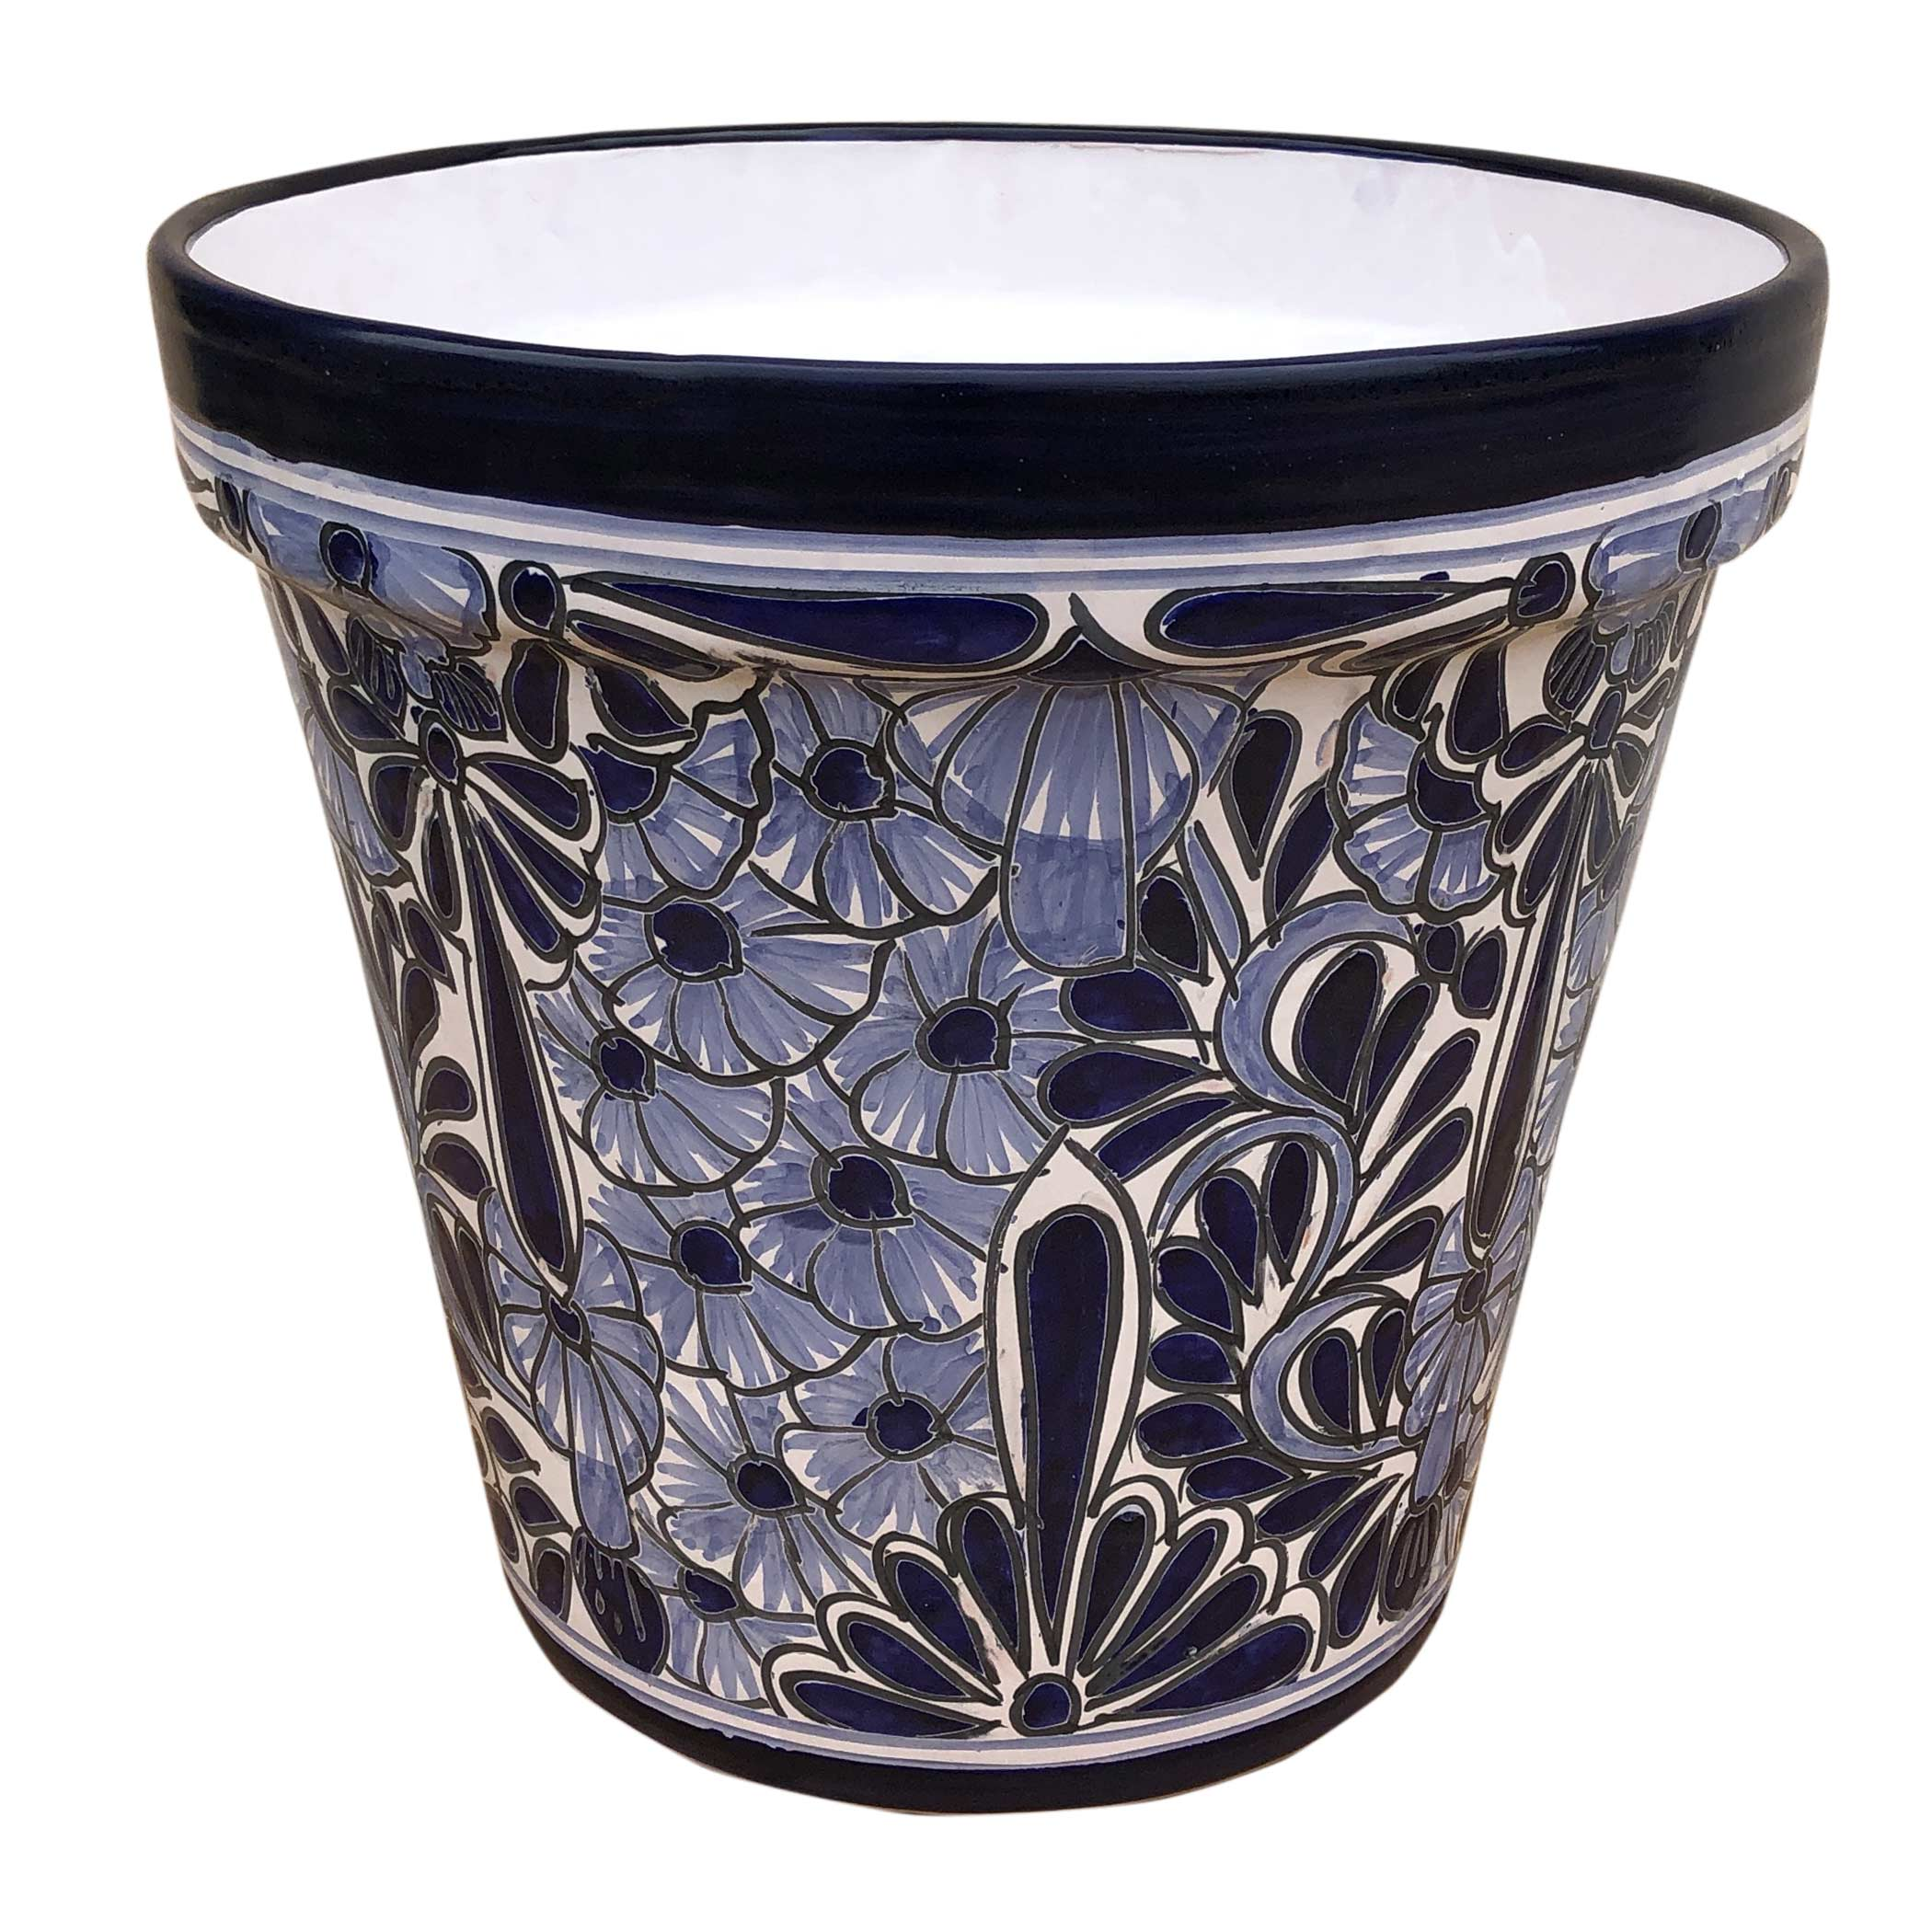 Ceramic Flower Pot Large Ceramic Talavera Cone Flower Pot 40cm Hadeda Tiles